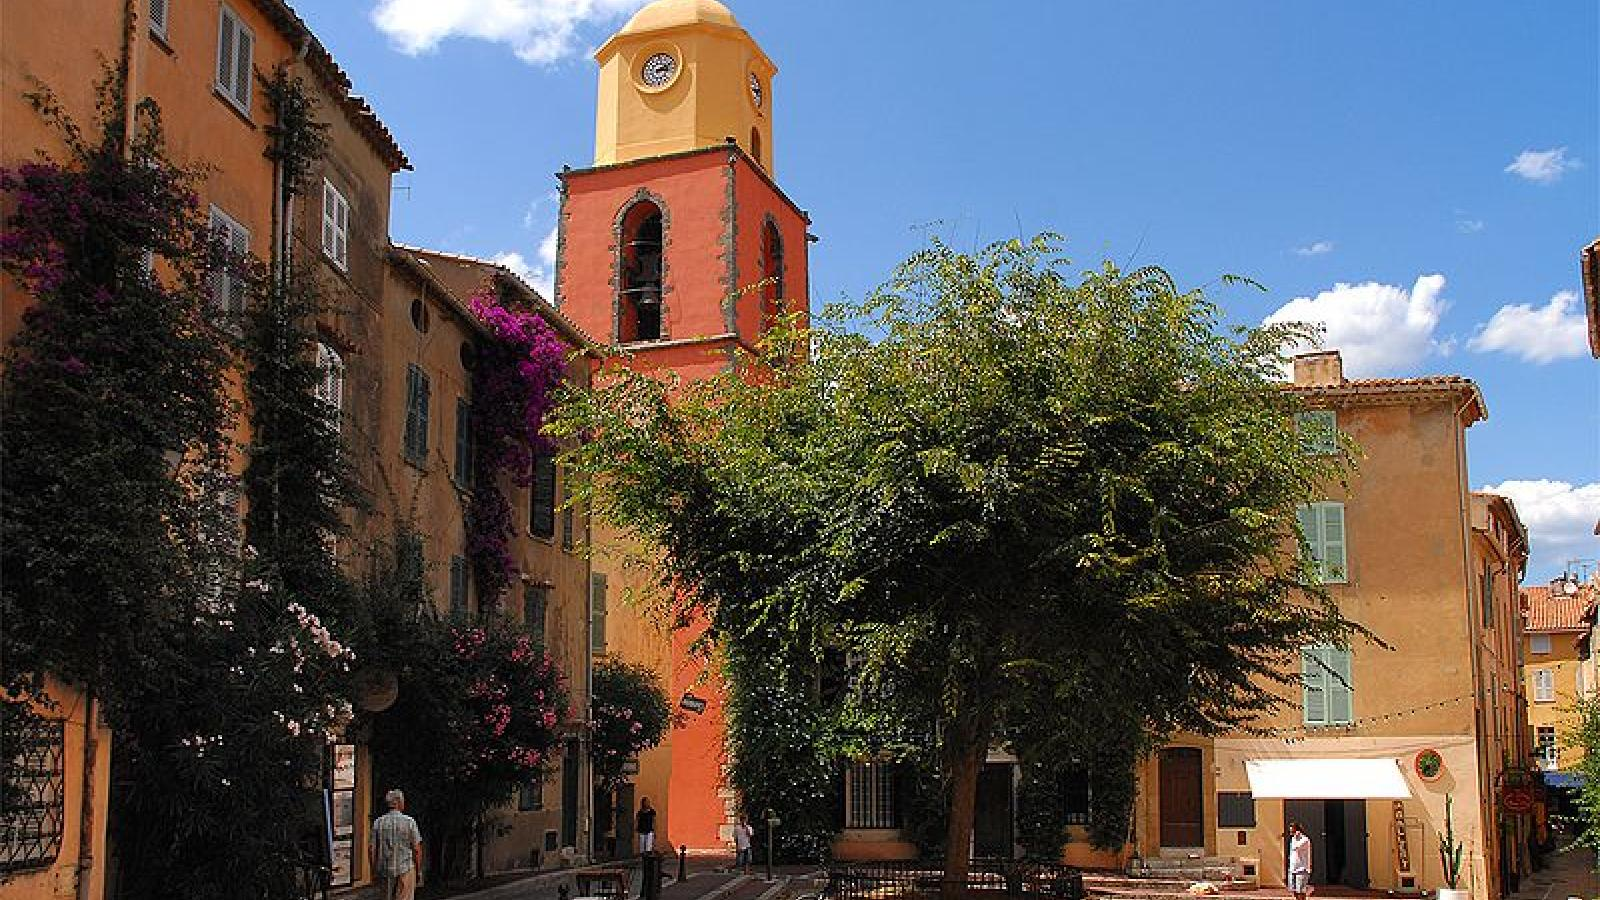 Discover the architecture of Saint-Tropez